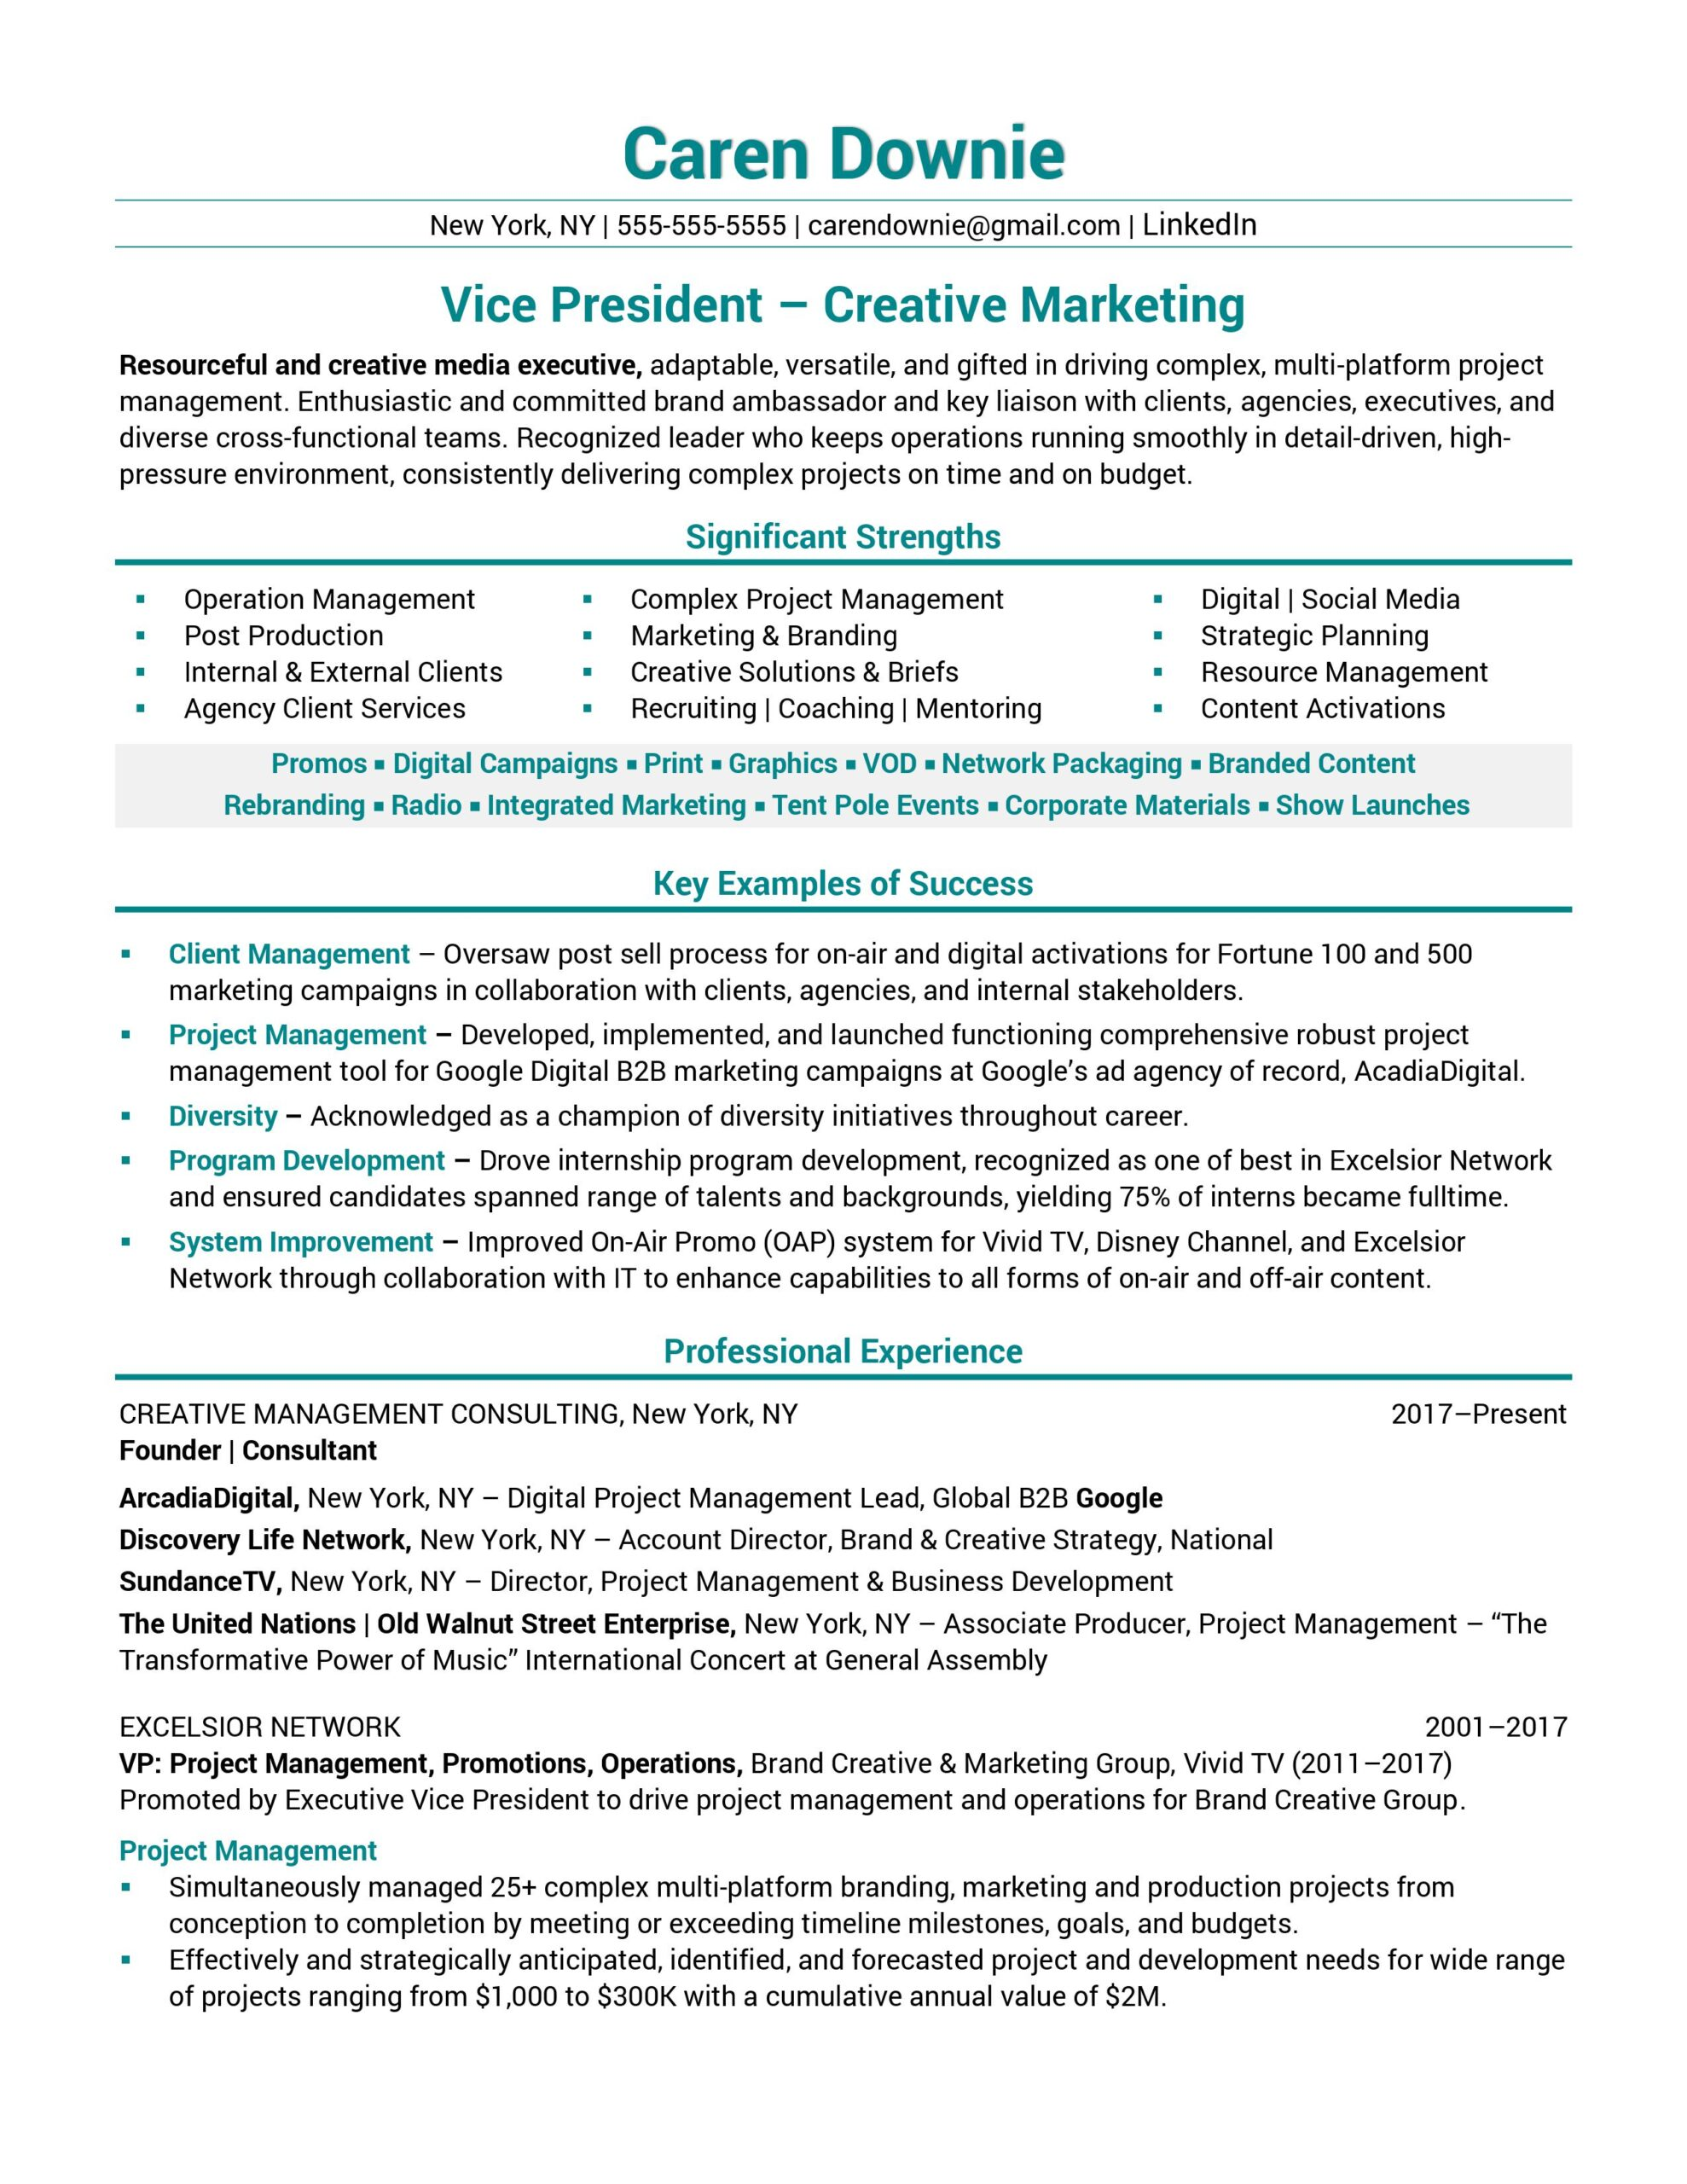 resume samples business examples vice president creative marketing sample best Resume Business Resume Examples 2019